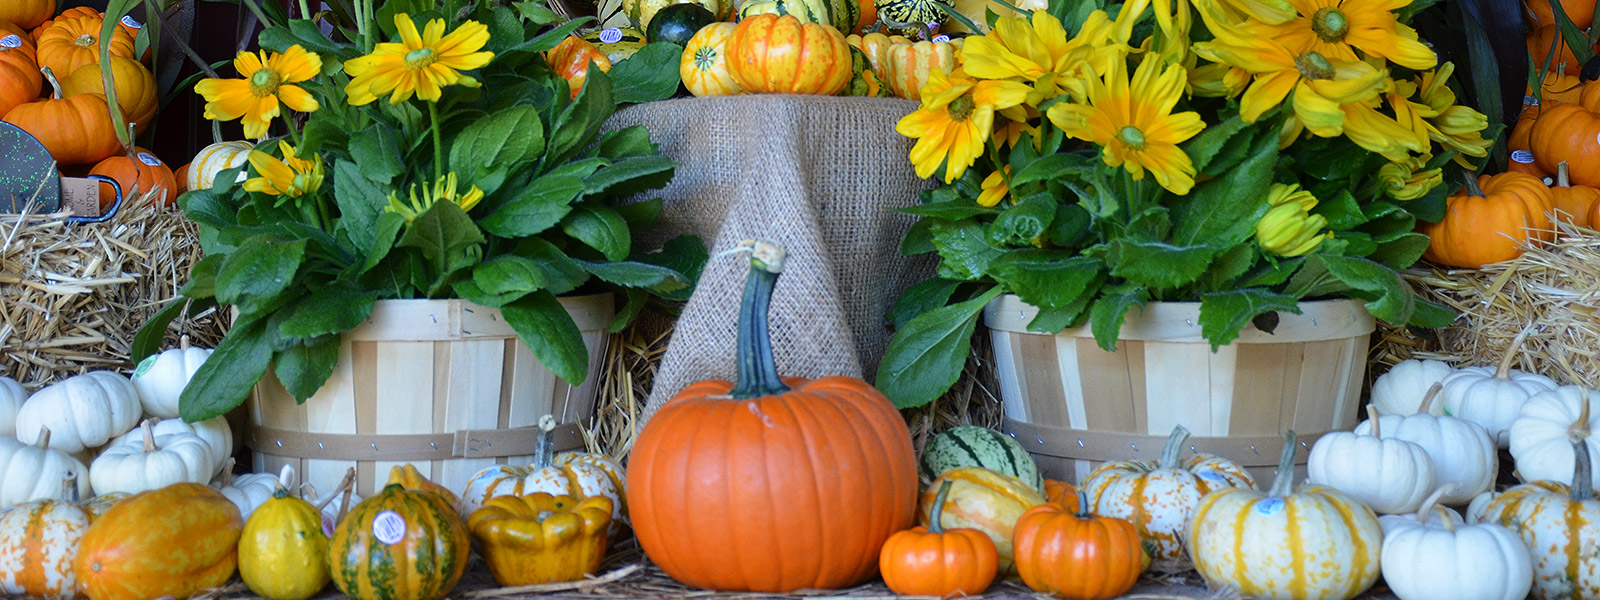 Fall flowers and pumpkins